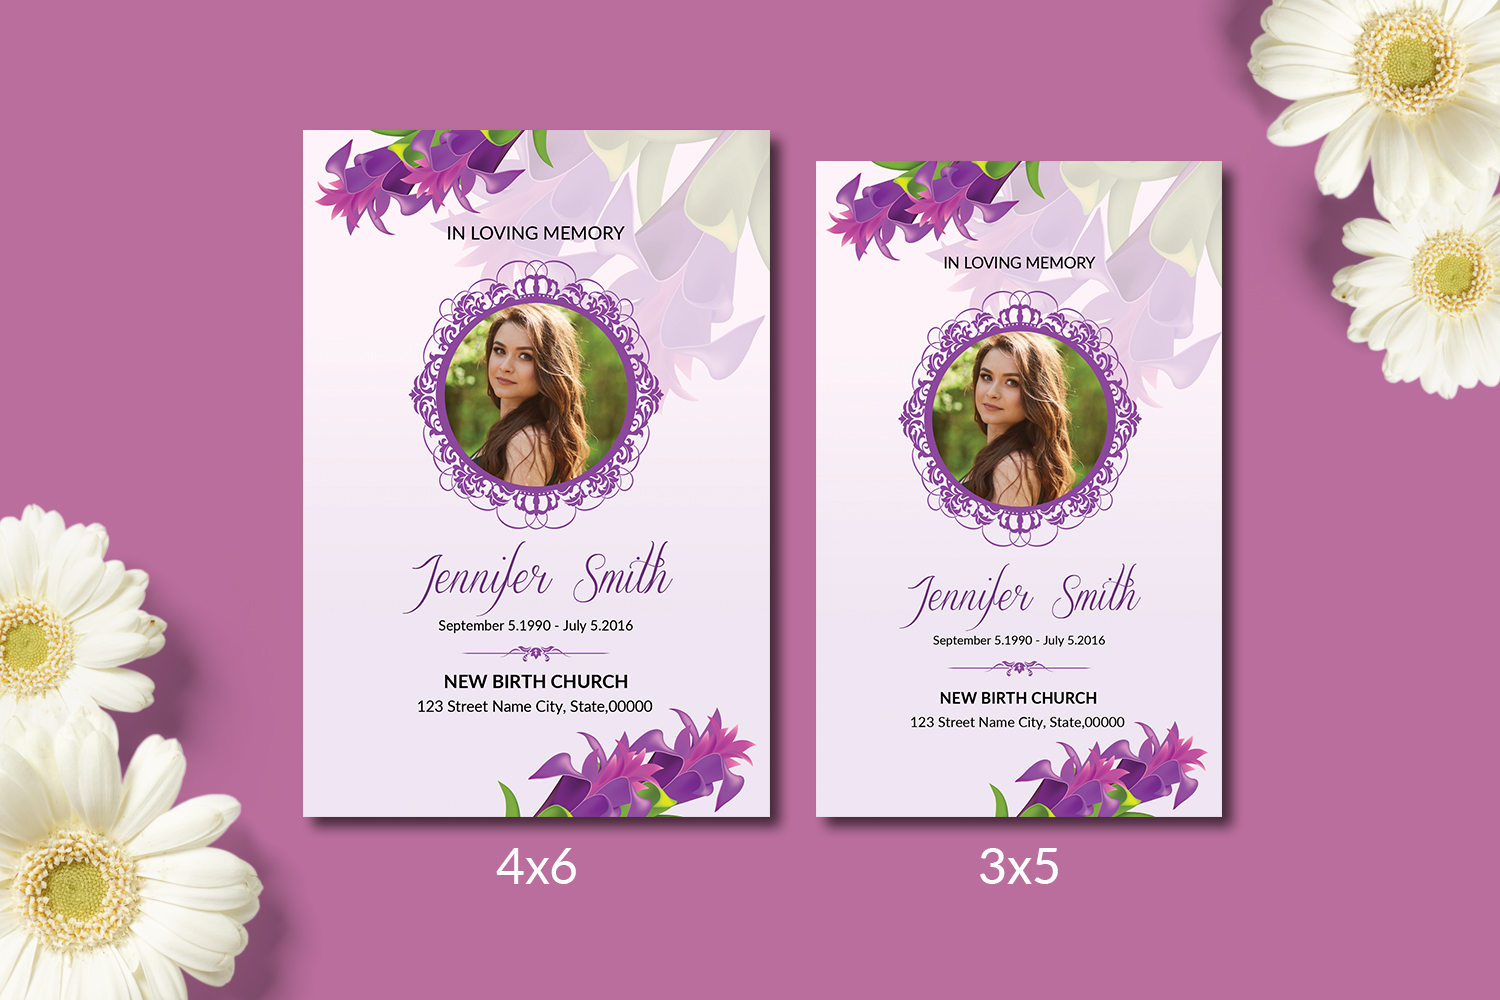 Funeral Prayer Card Template example image 1